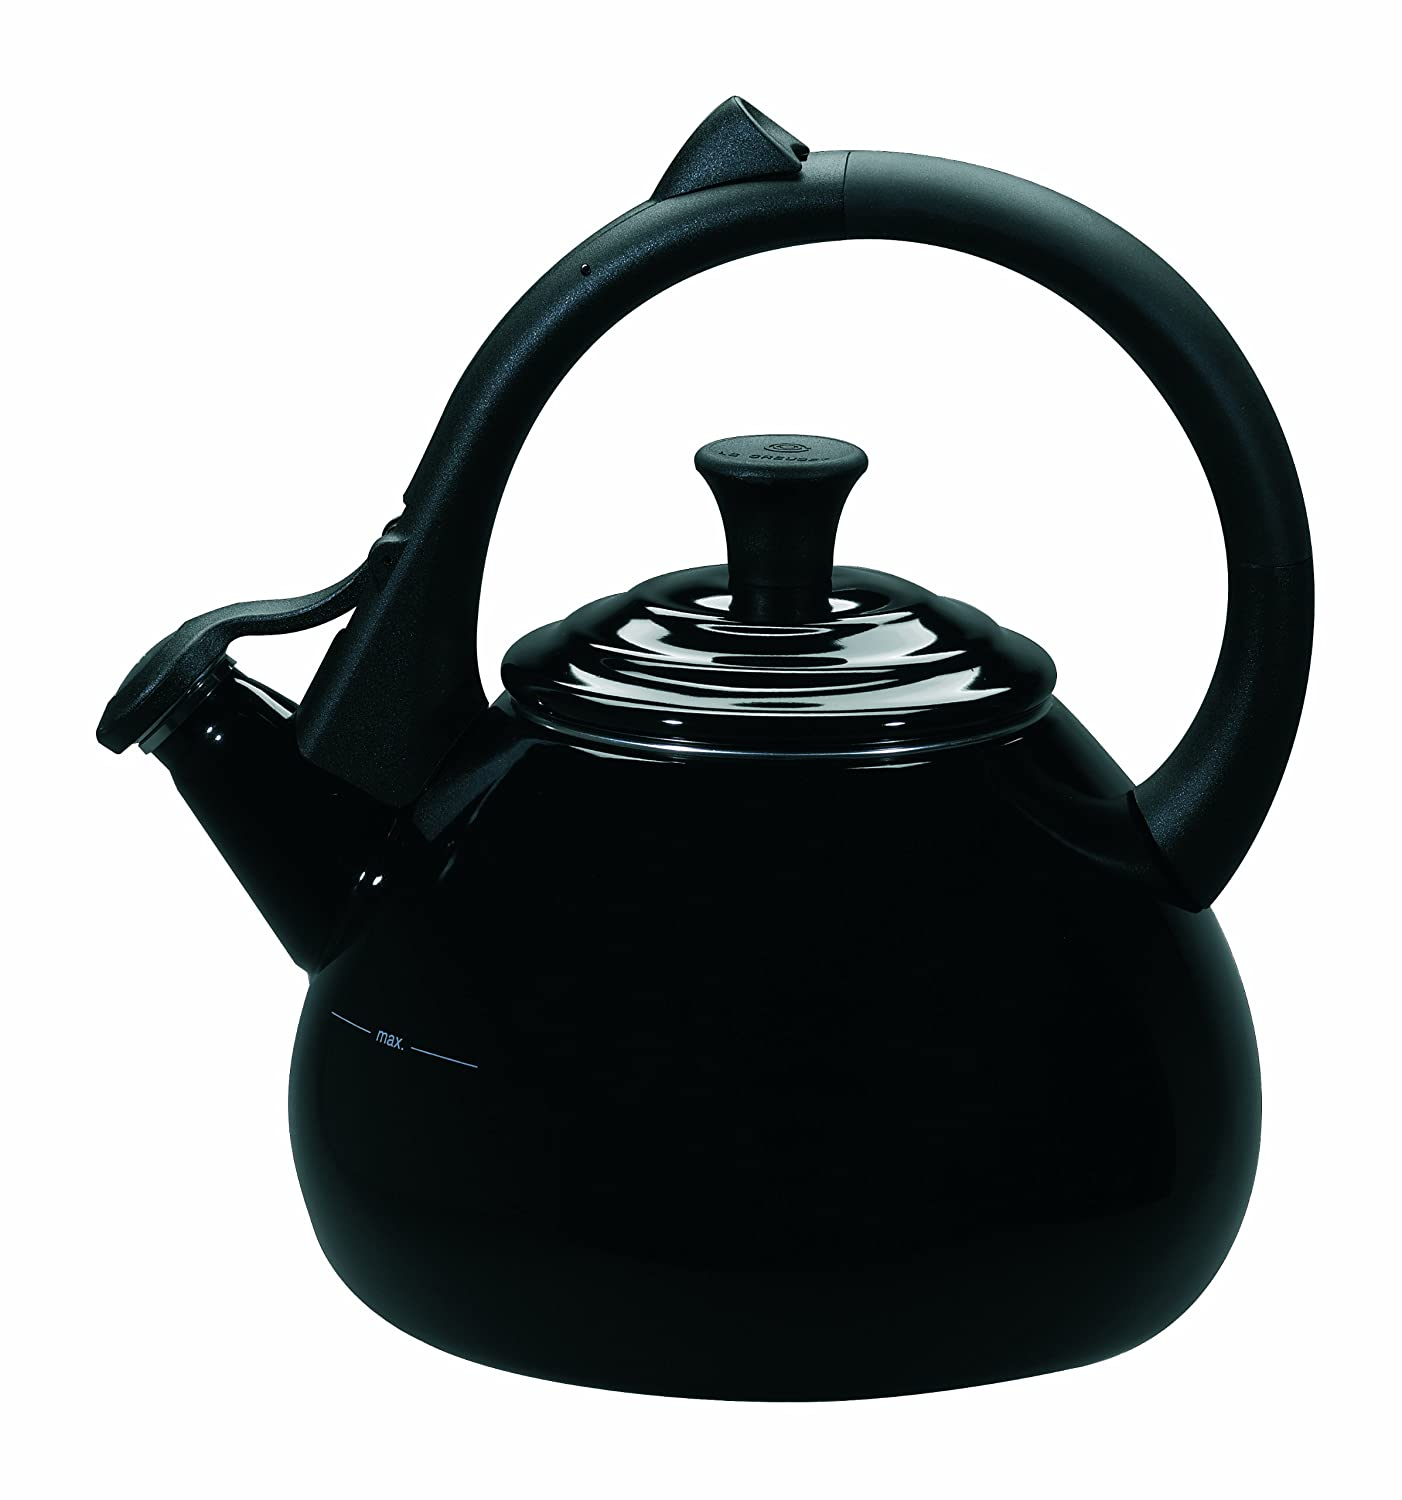 5. Le Creuset Enameled Tea Kettle